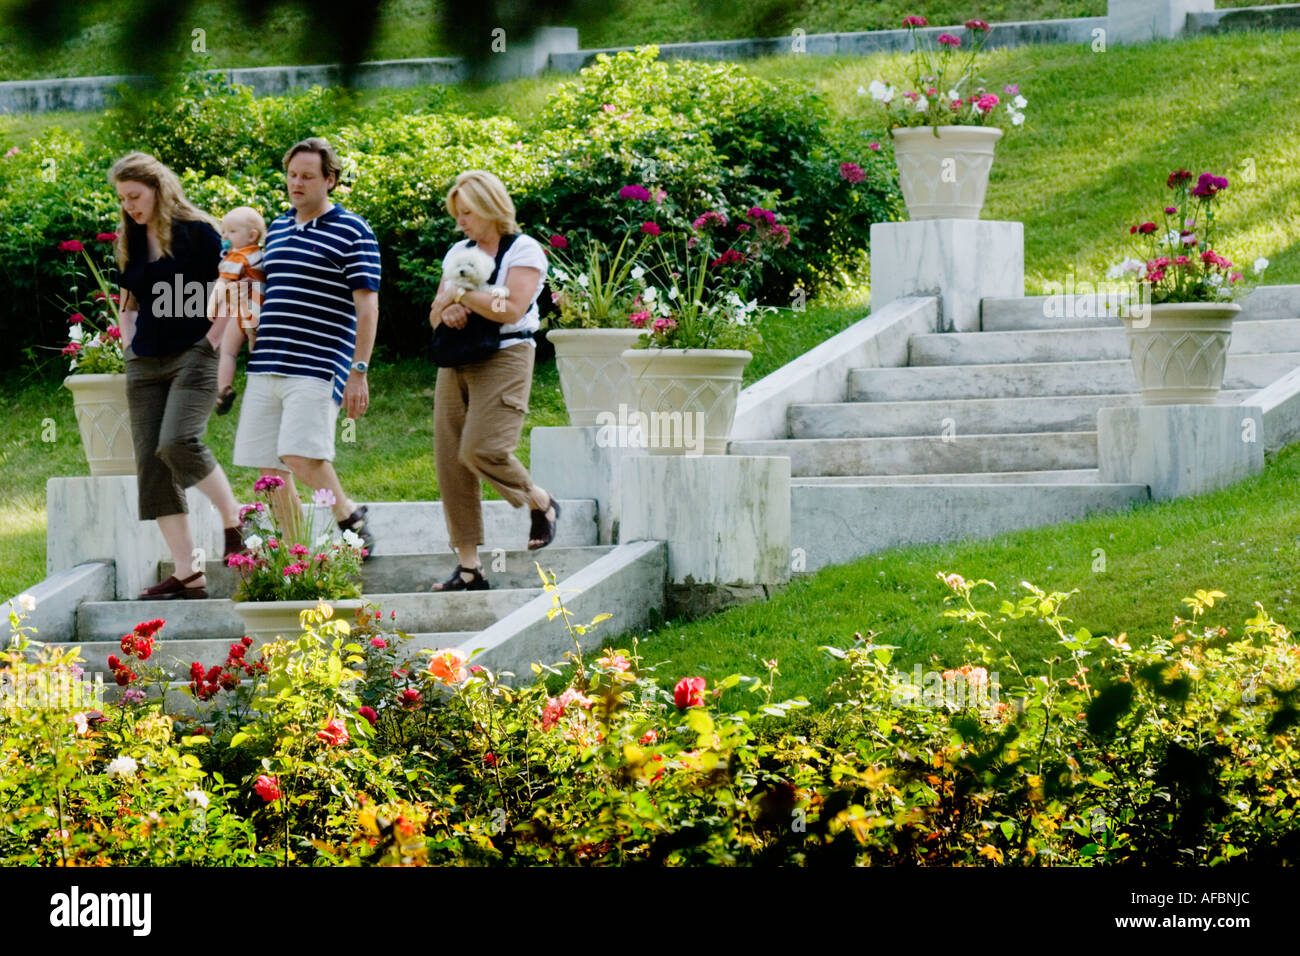 Family strolls amongst roses and vases at Yaddo Gardens Saratoga Springs New York - Stock Image